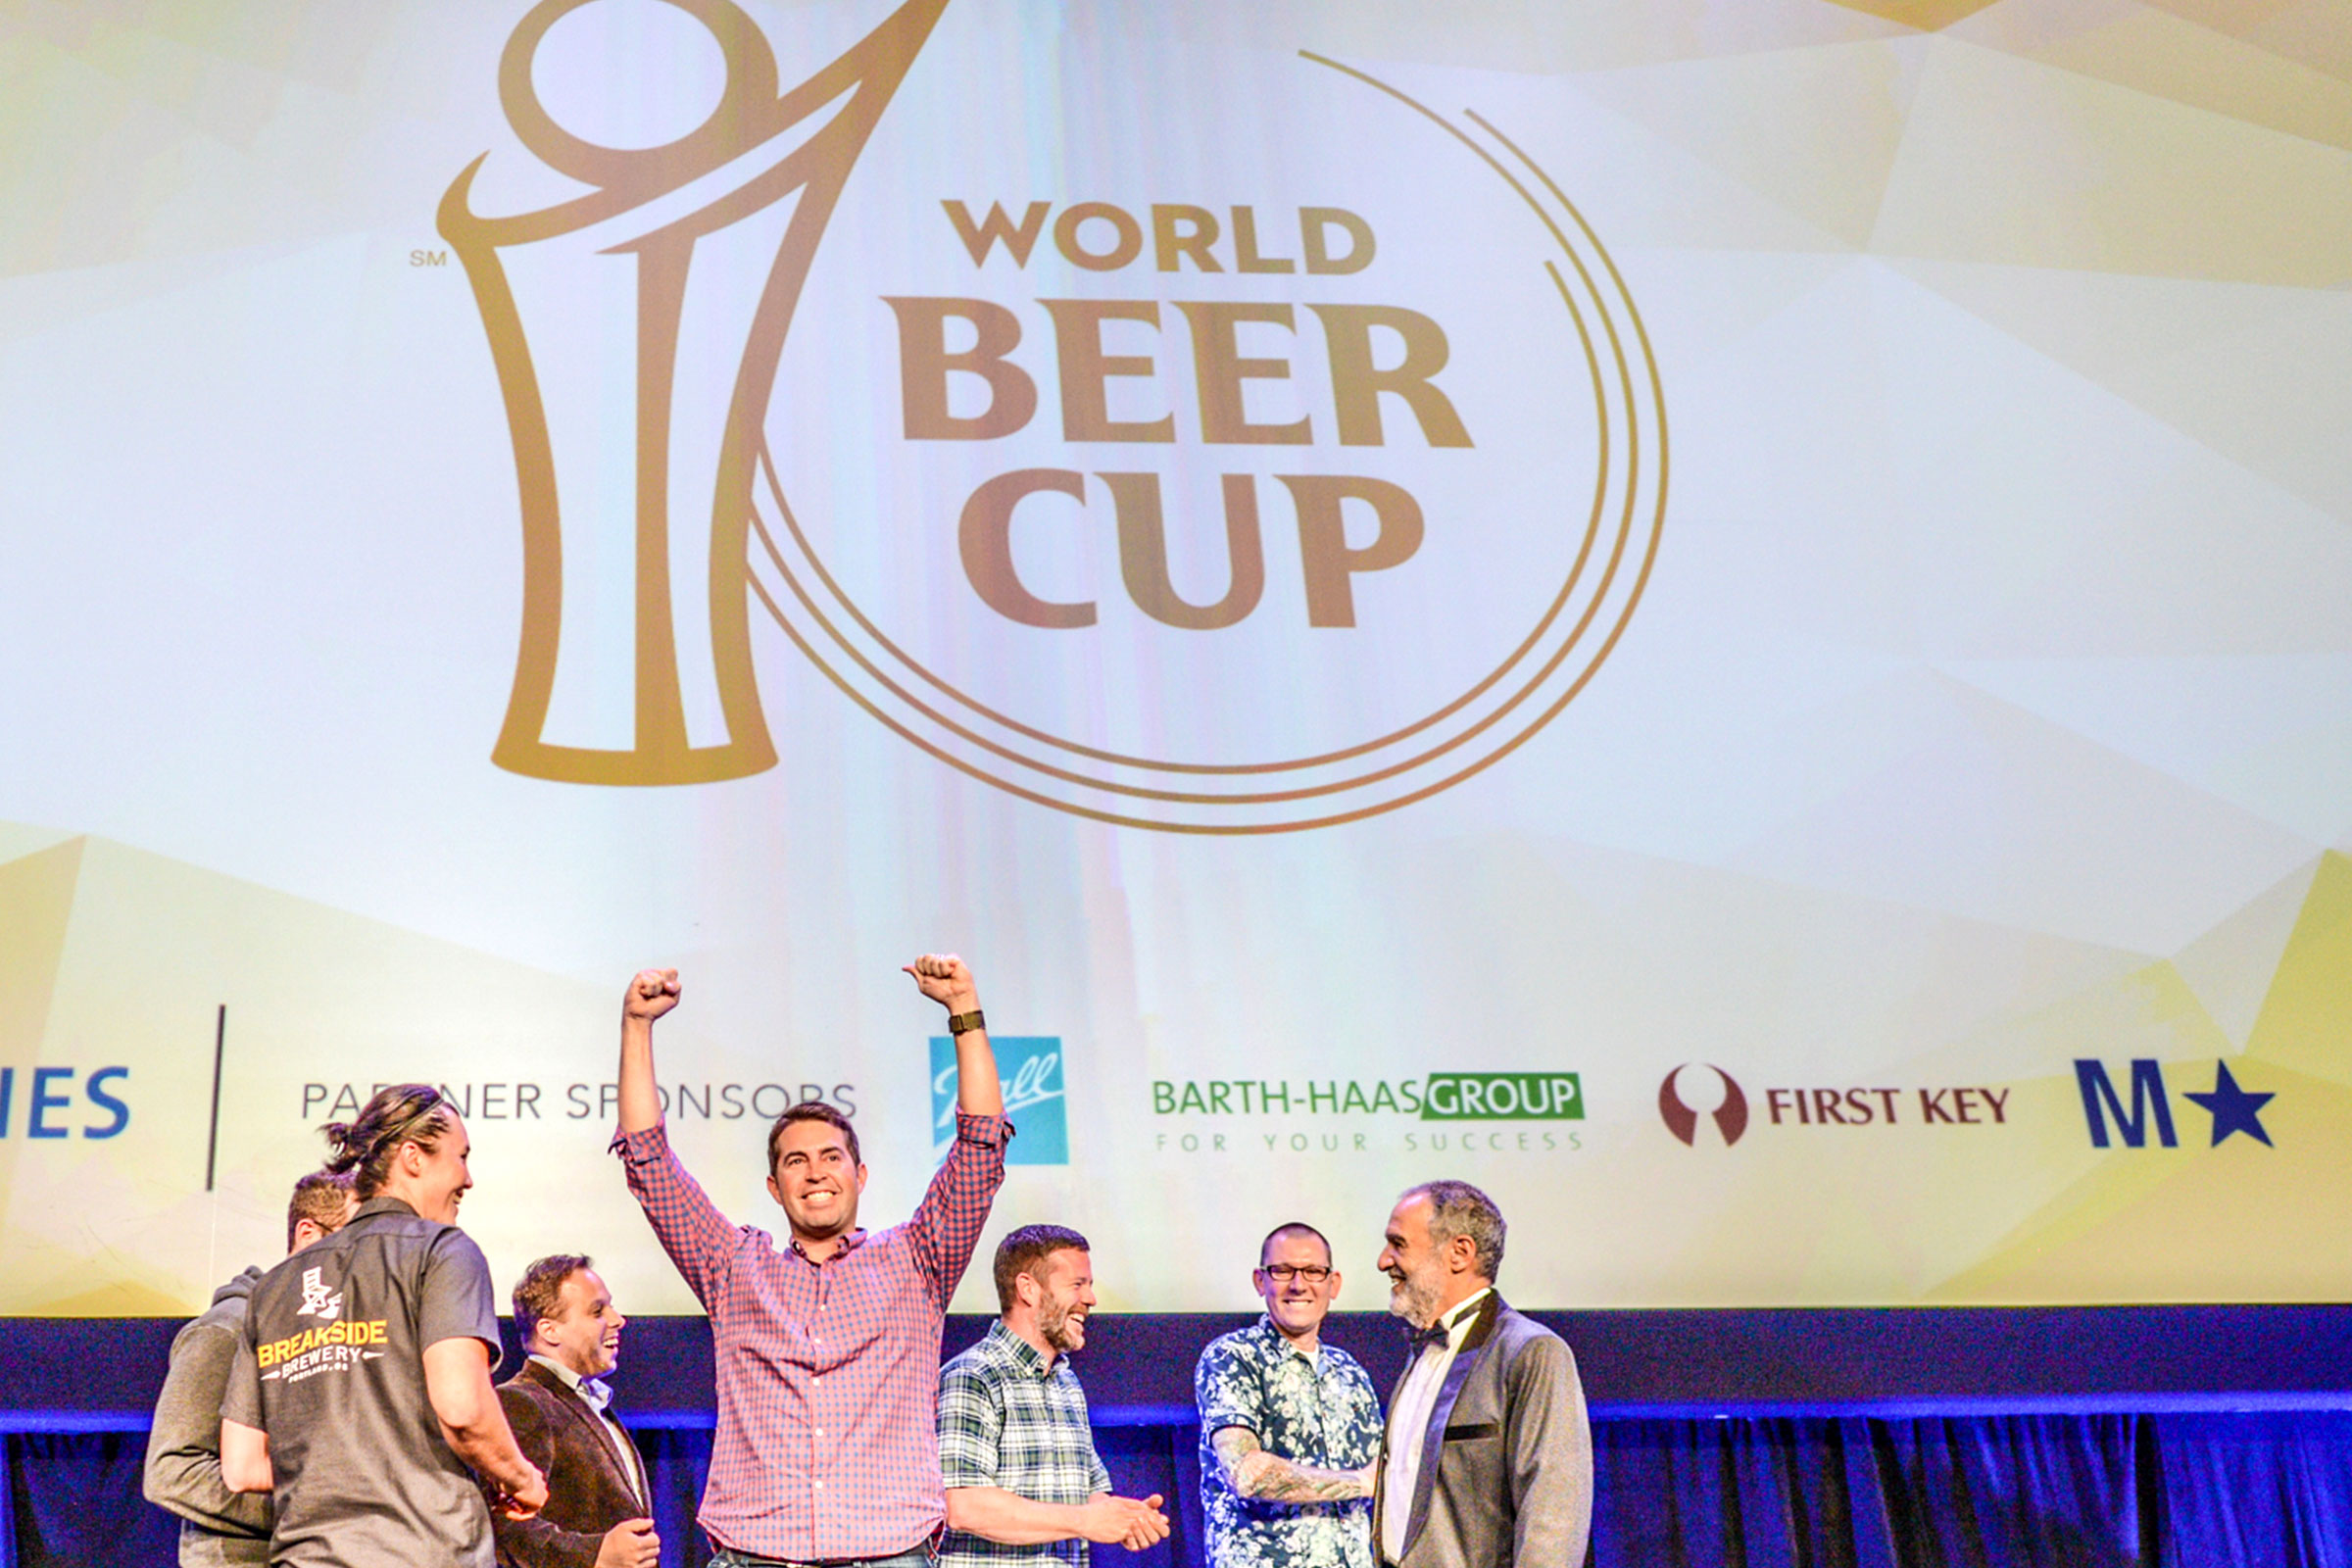 World Beer Cup Award 2